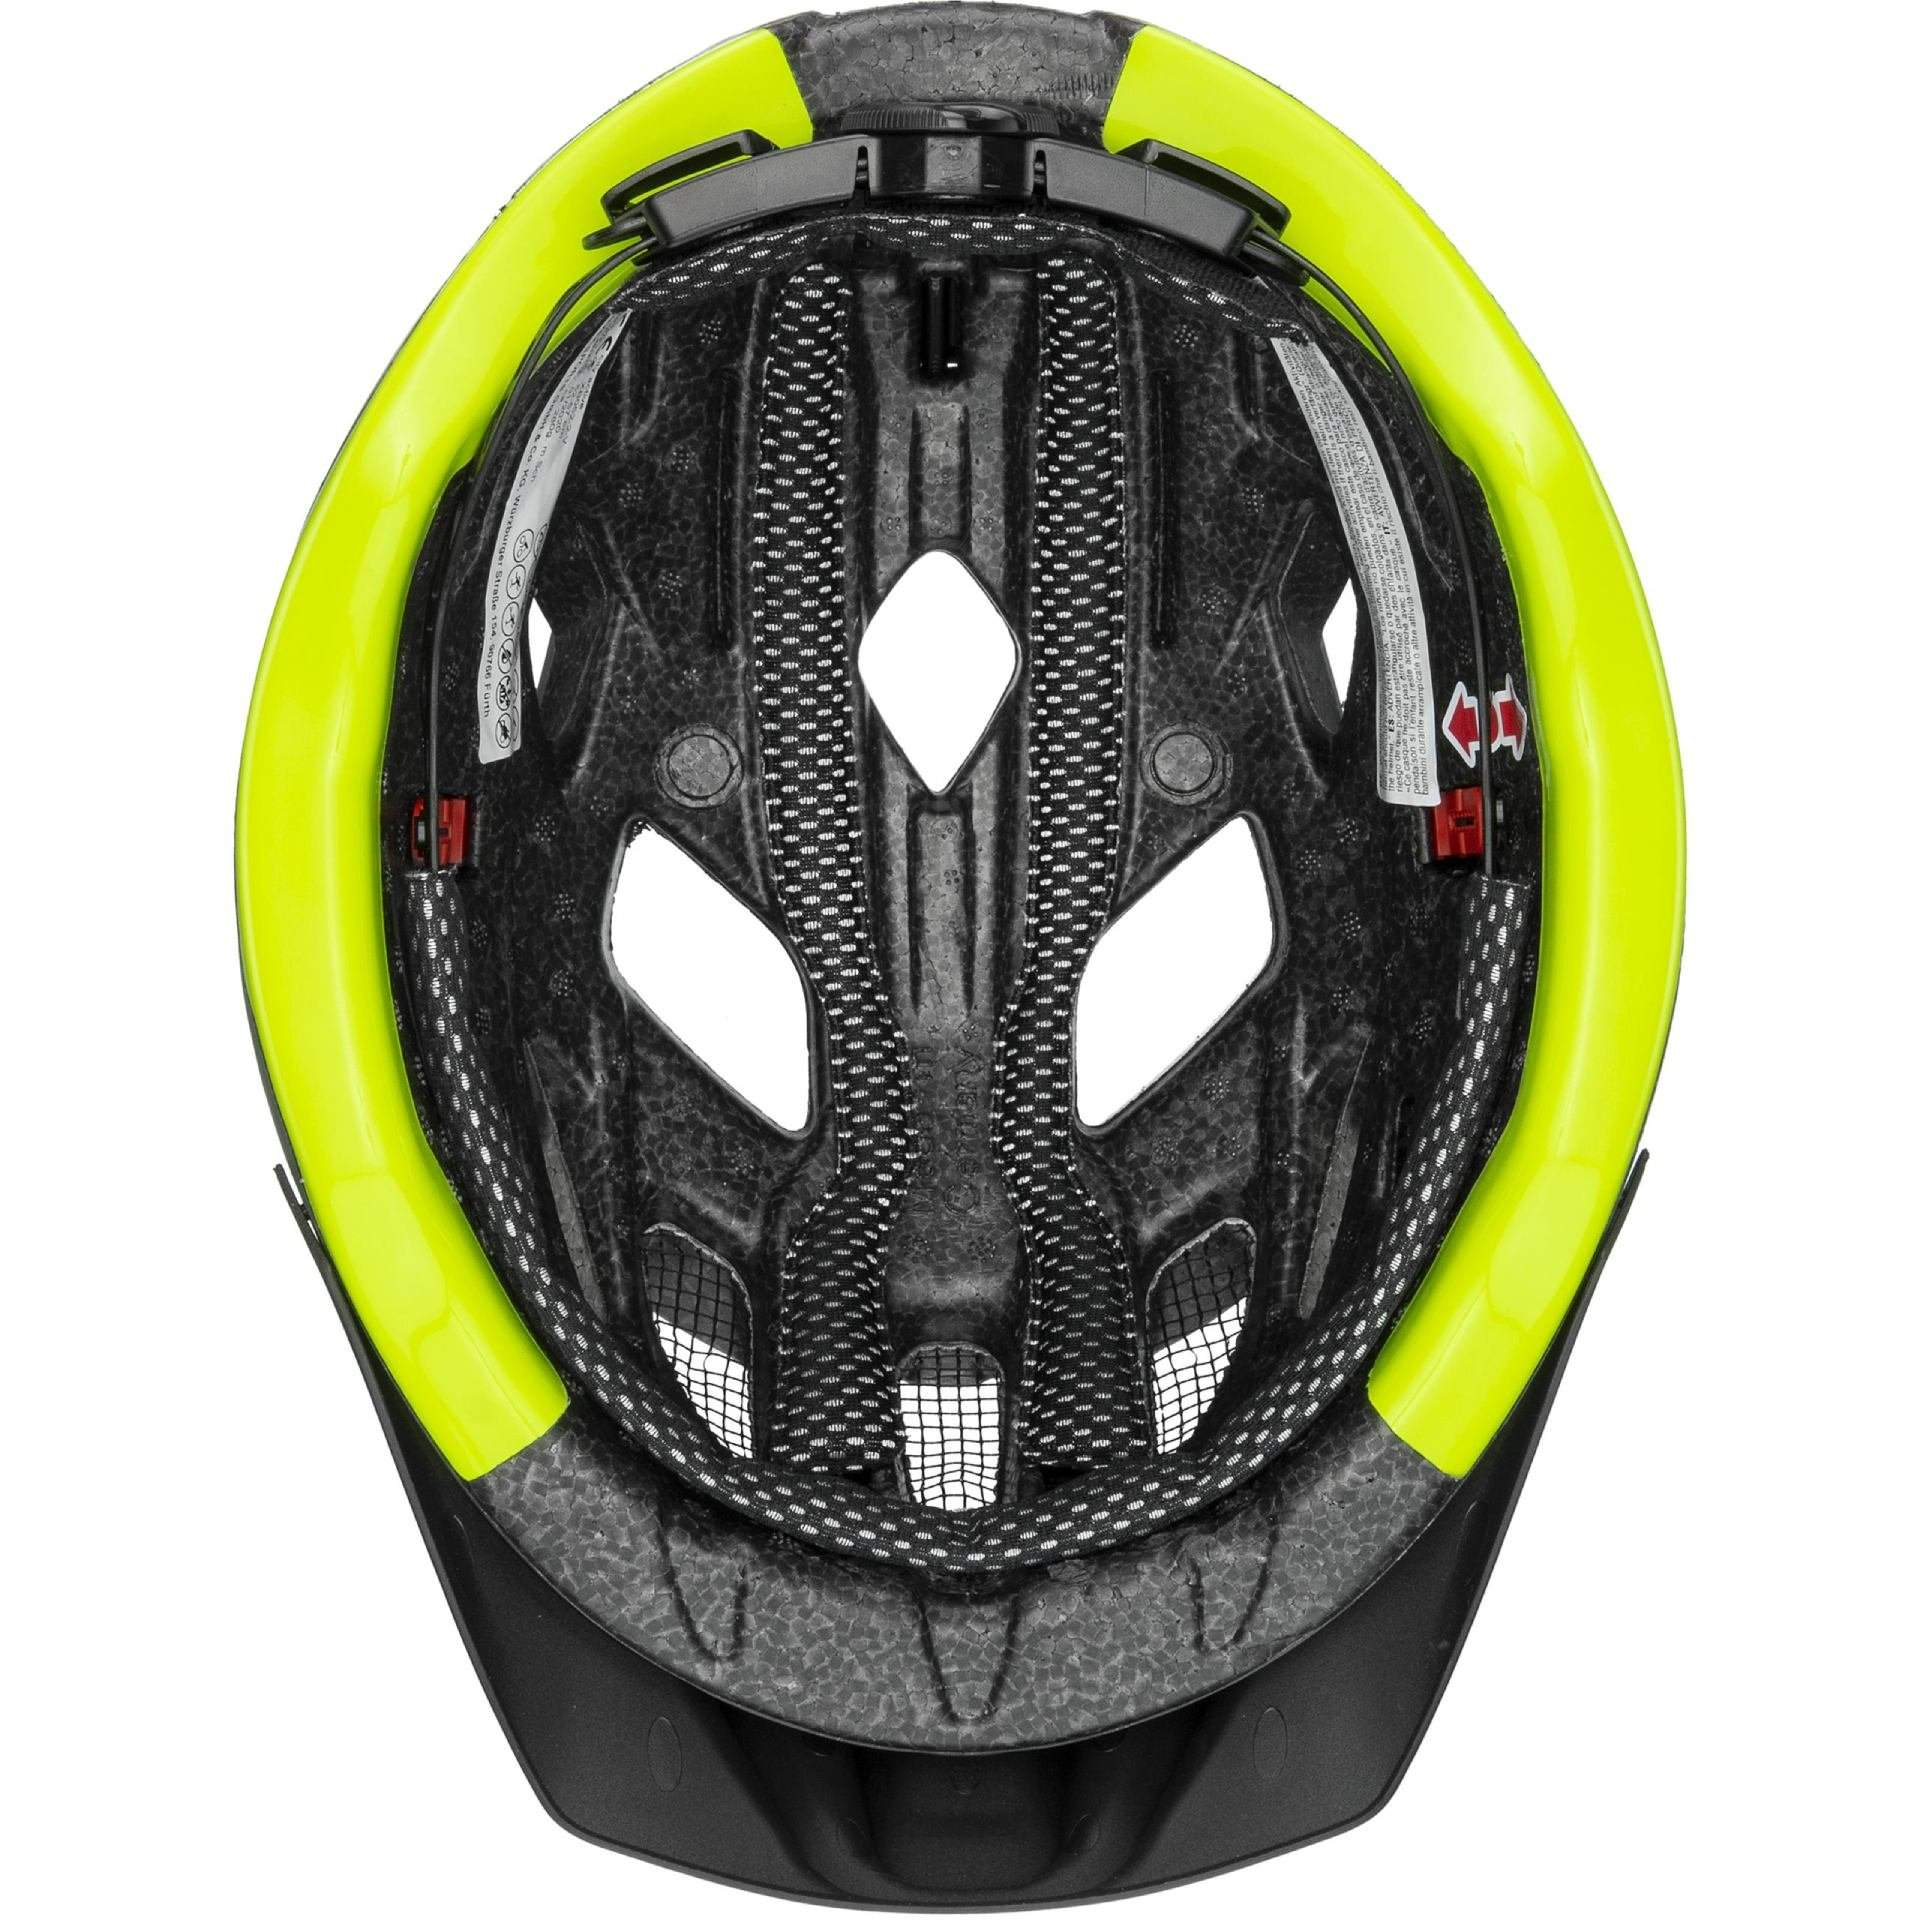 KASK ROWEROWY UVEX CITY ACTIVE 41|0|428|08 ANTHRAZIT|LIME MAT W ŚRODKU